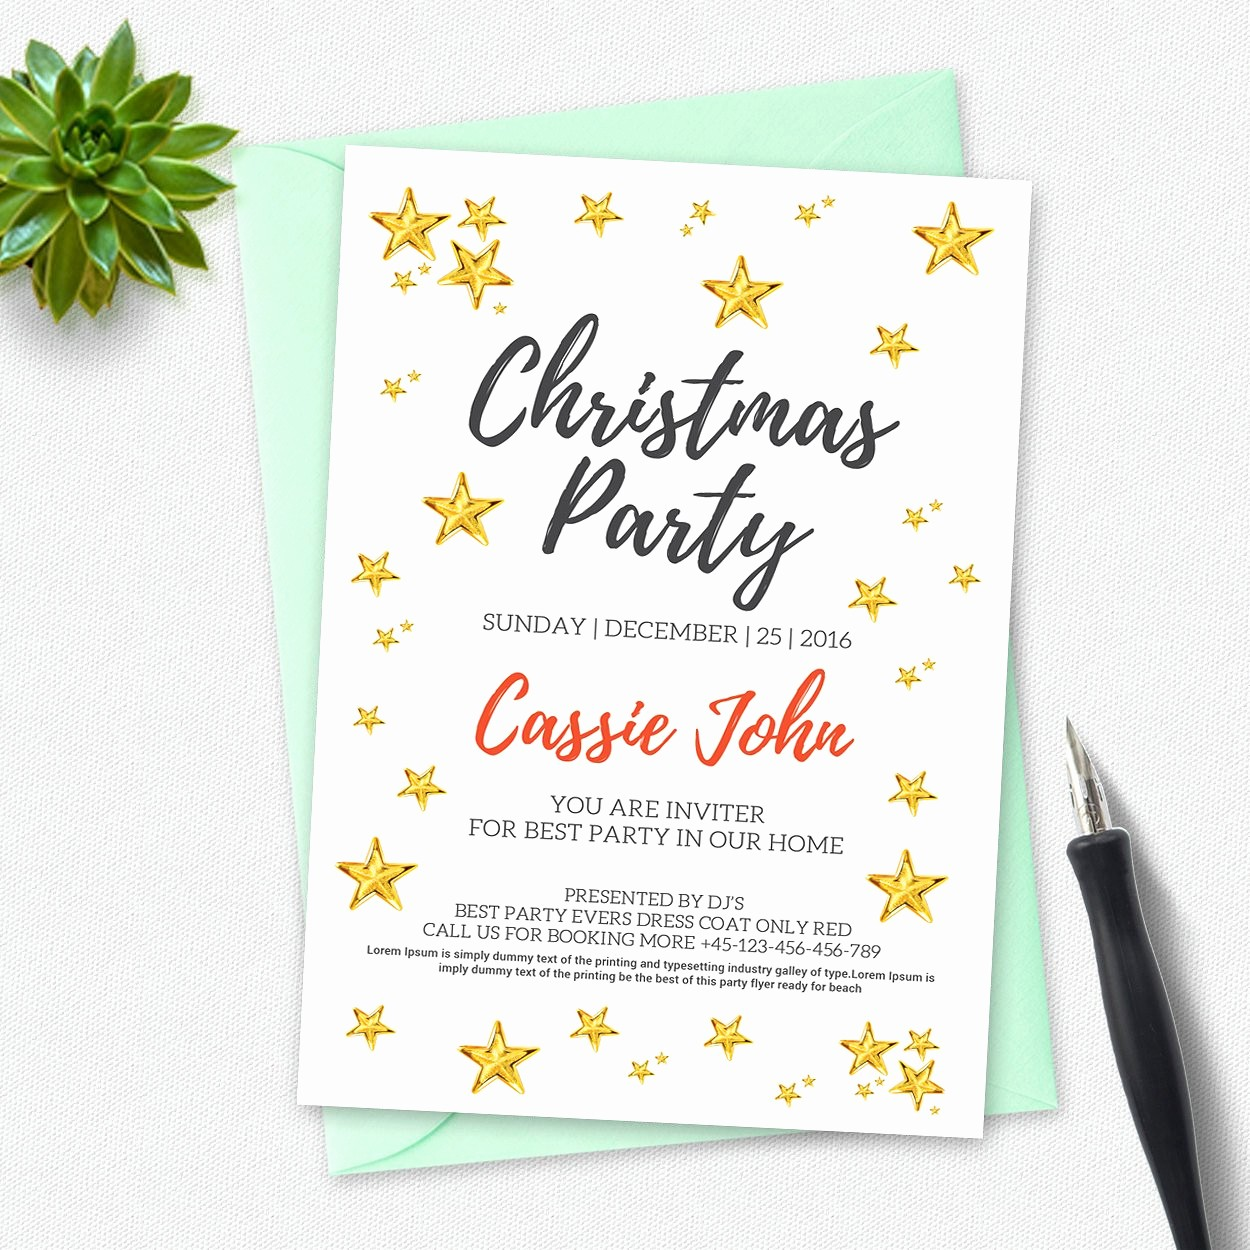 Annual Holiday Party Invitation Template Elegant Christmas Party Invitation Card Invitation Templates